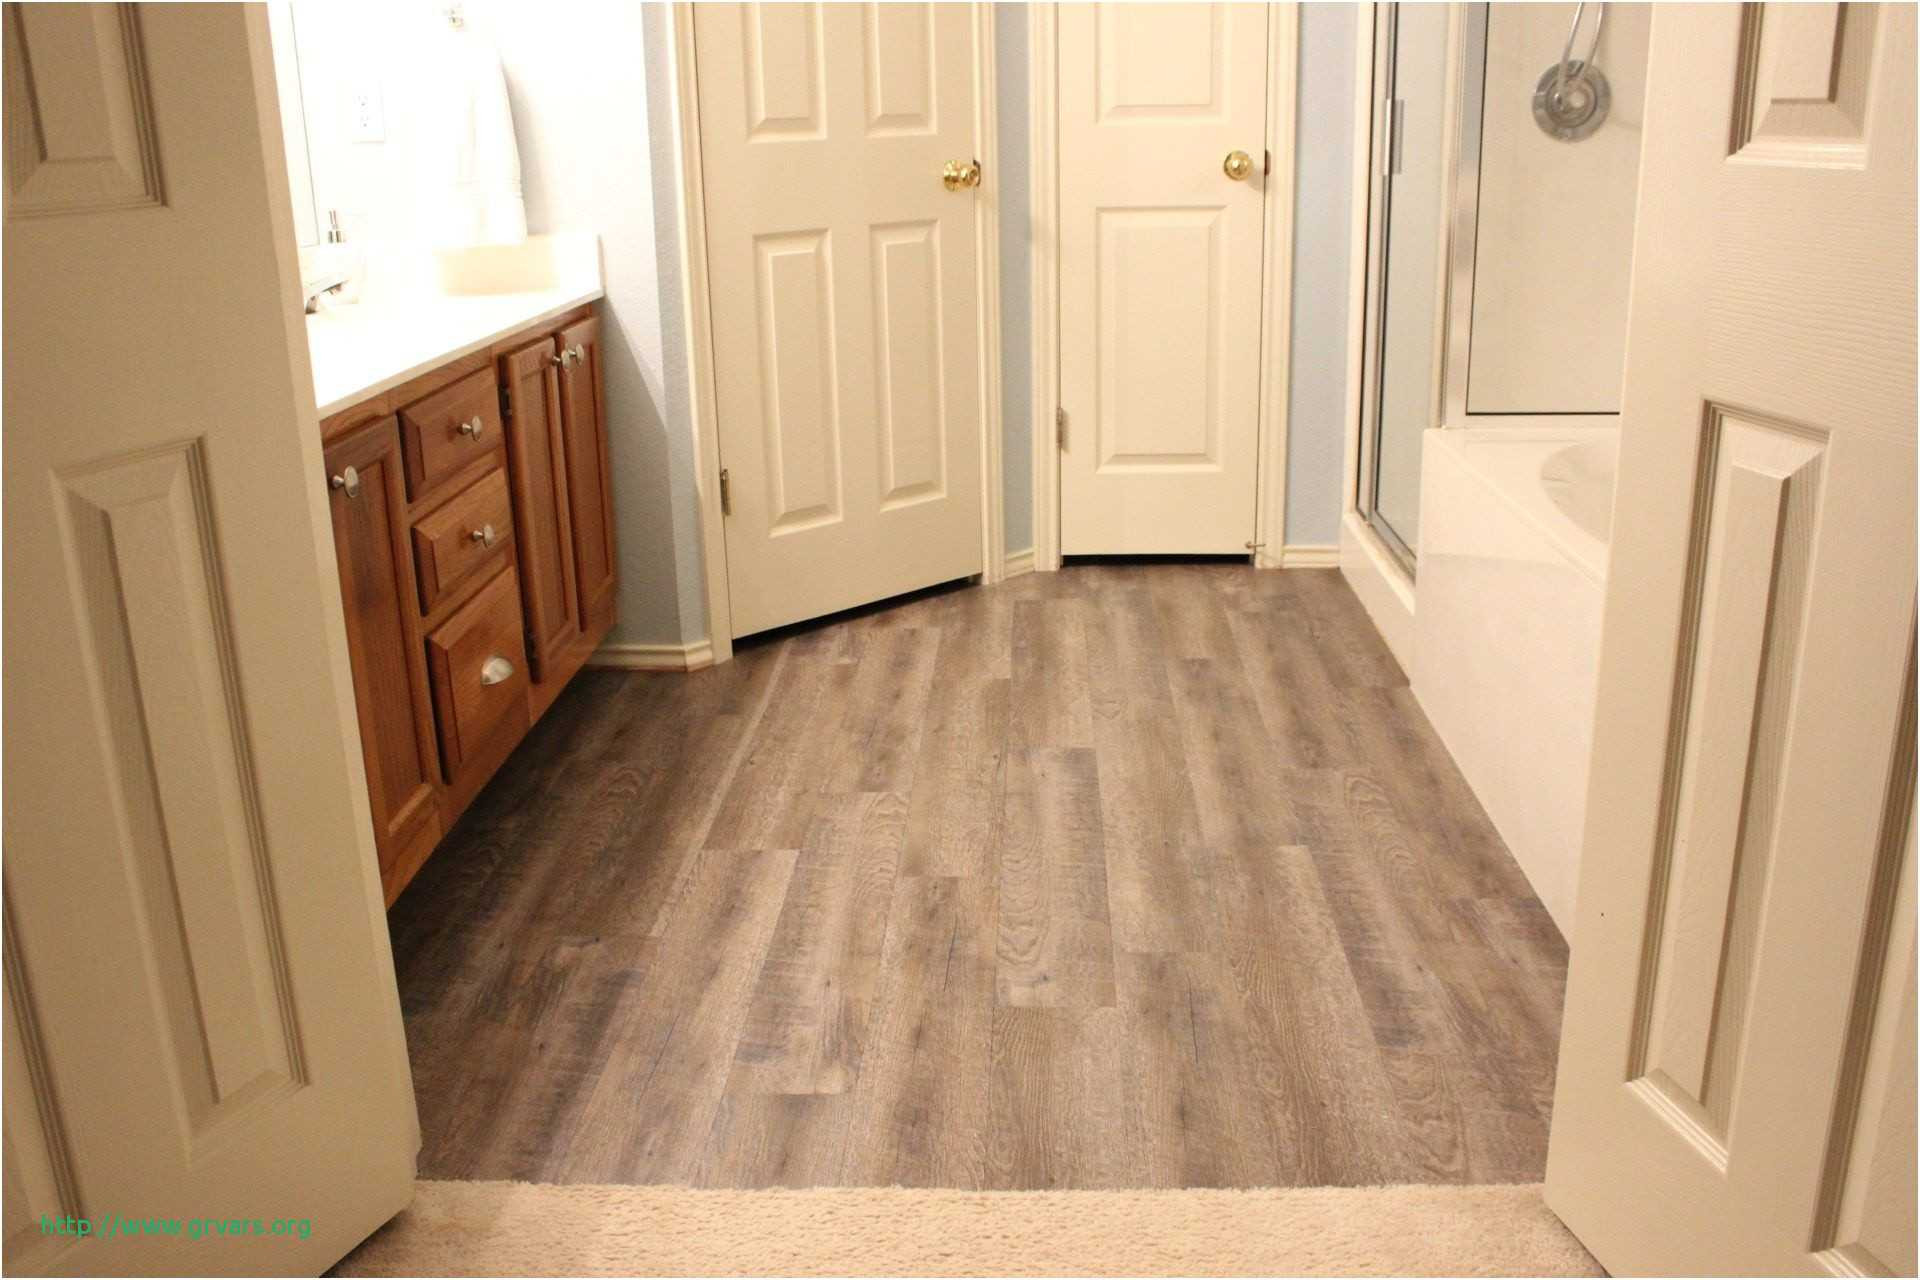 best cleaner for hand scraped hardwood floors of 22 a‰lagant what can i clean hardwood floors with ideas blog pertaining to flooring near me flooring sale near me stock 0d grace place barnegat nj flooring near me